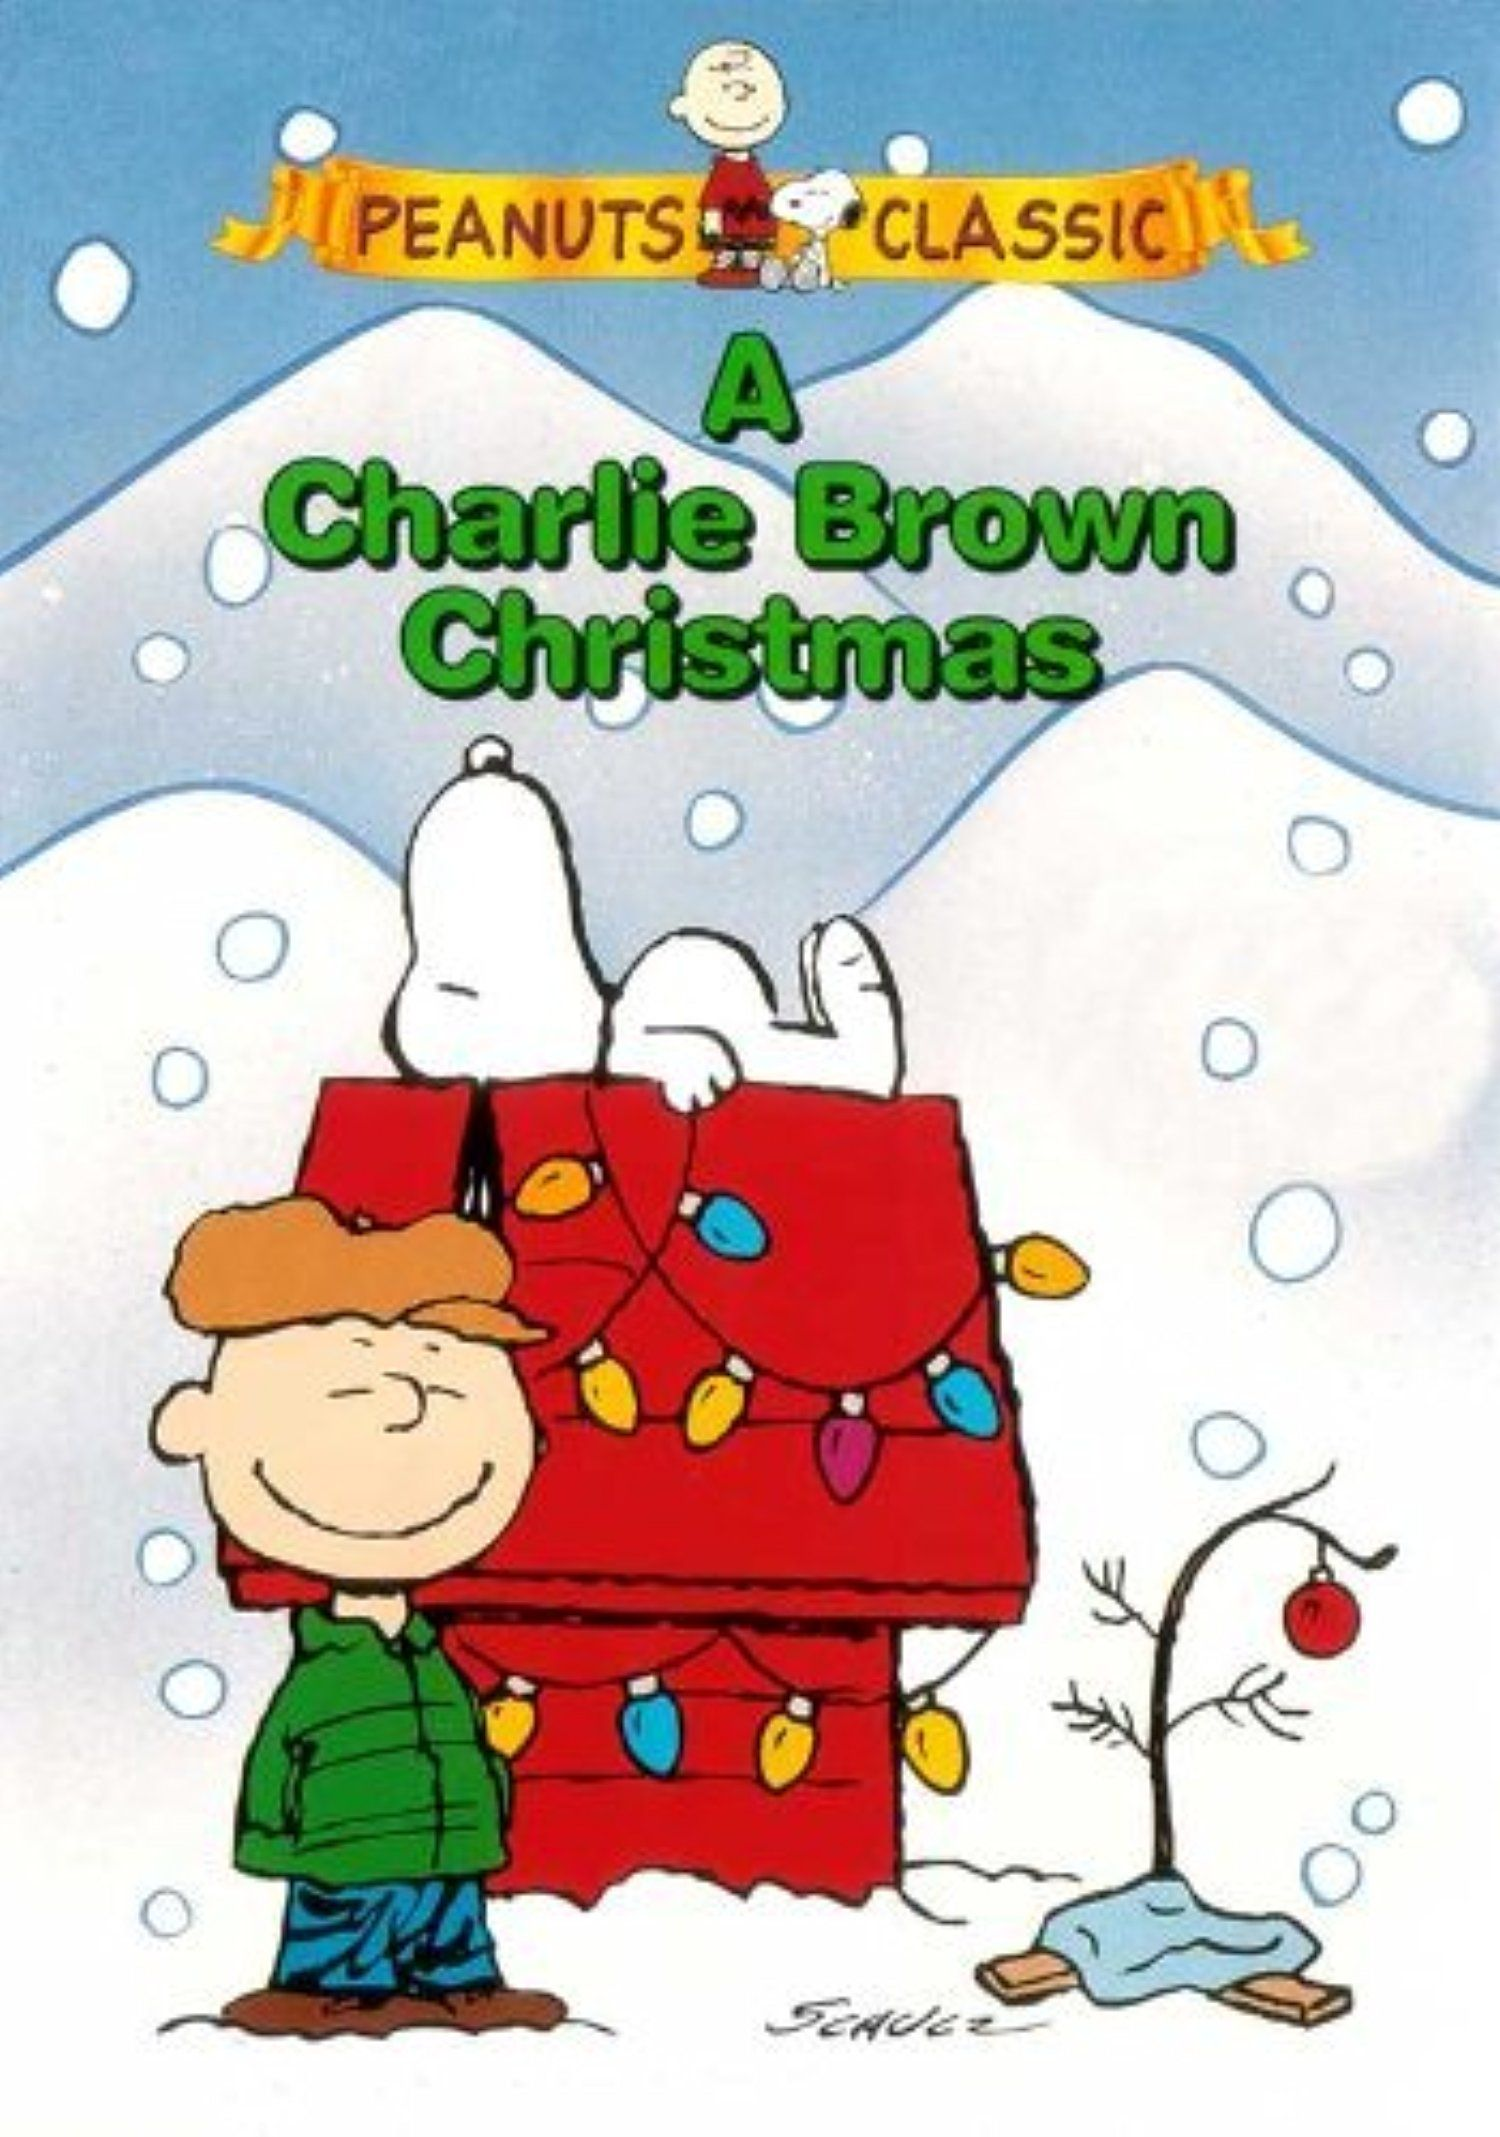 Decal Jewelry A Charlie Brown Christmas Poster -- Awesome products ...